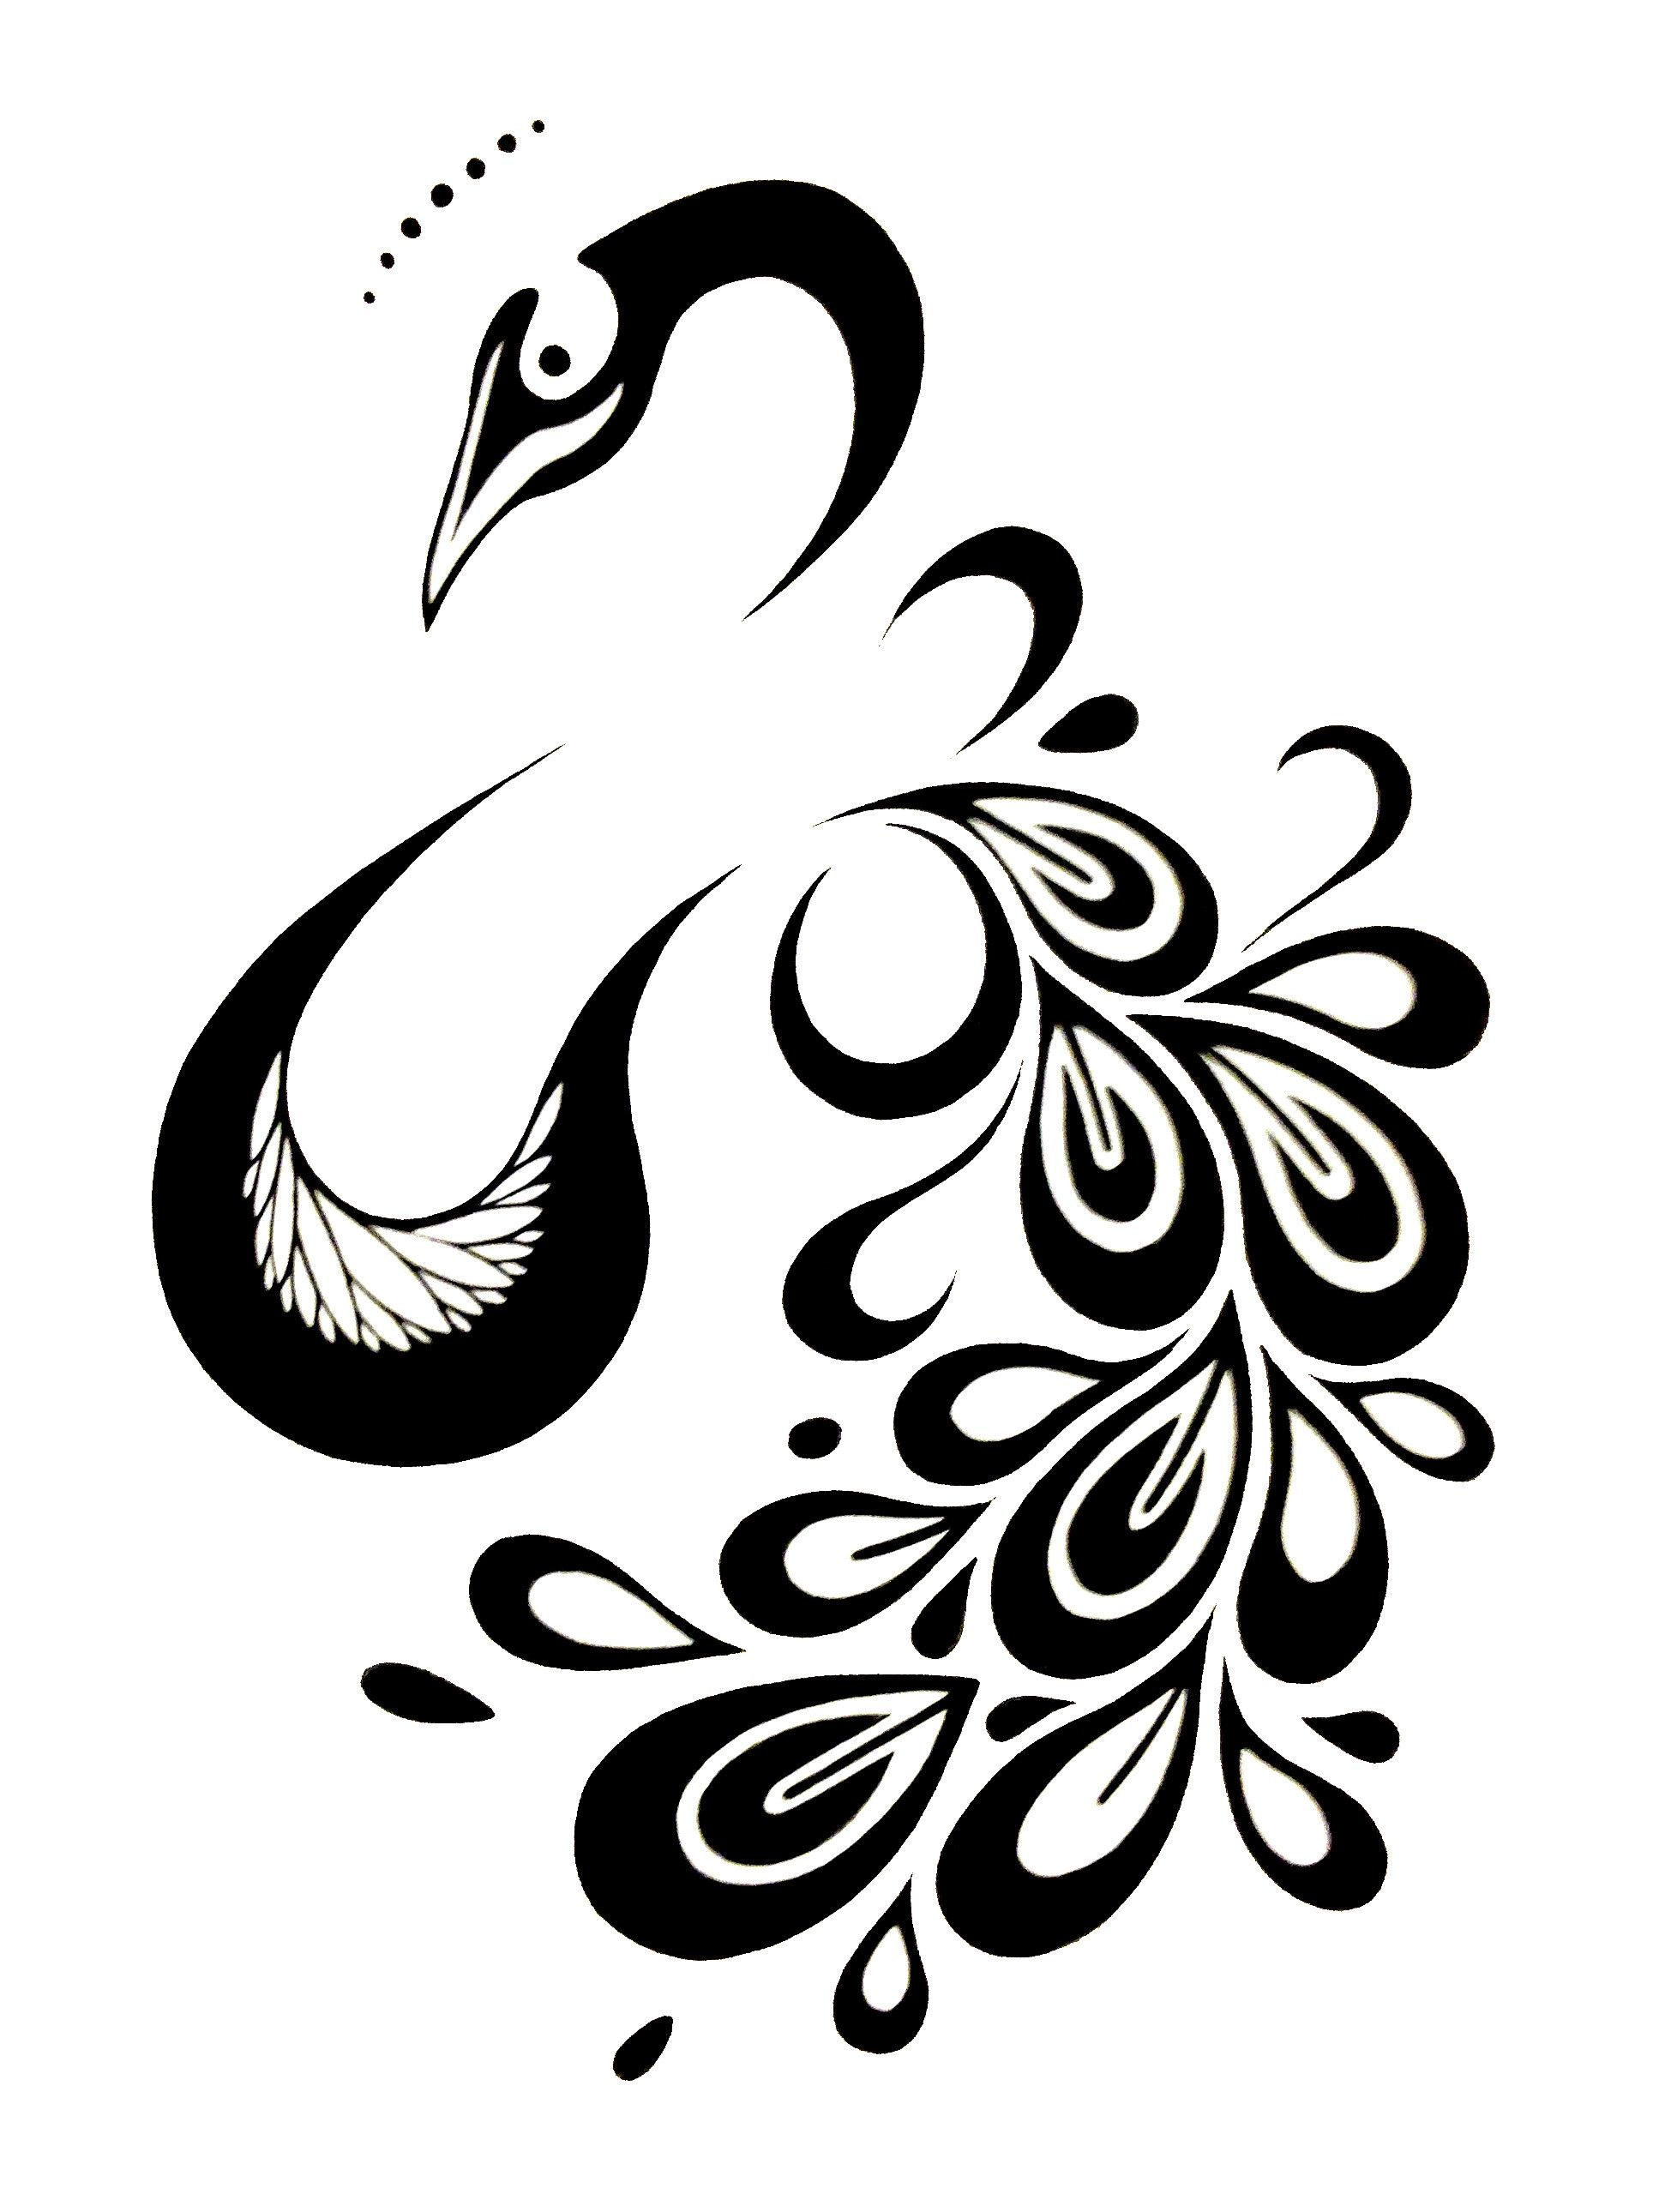 Peacock Tattoo Design Stenciling, Quilting stencils and